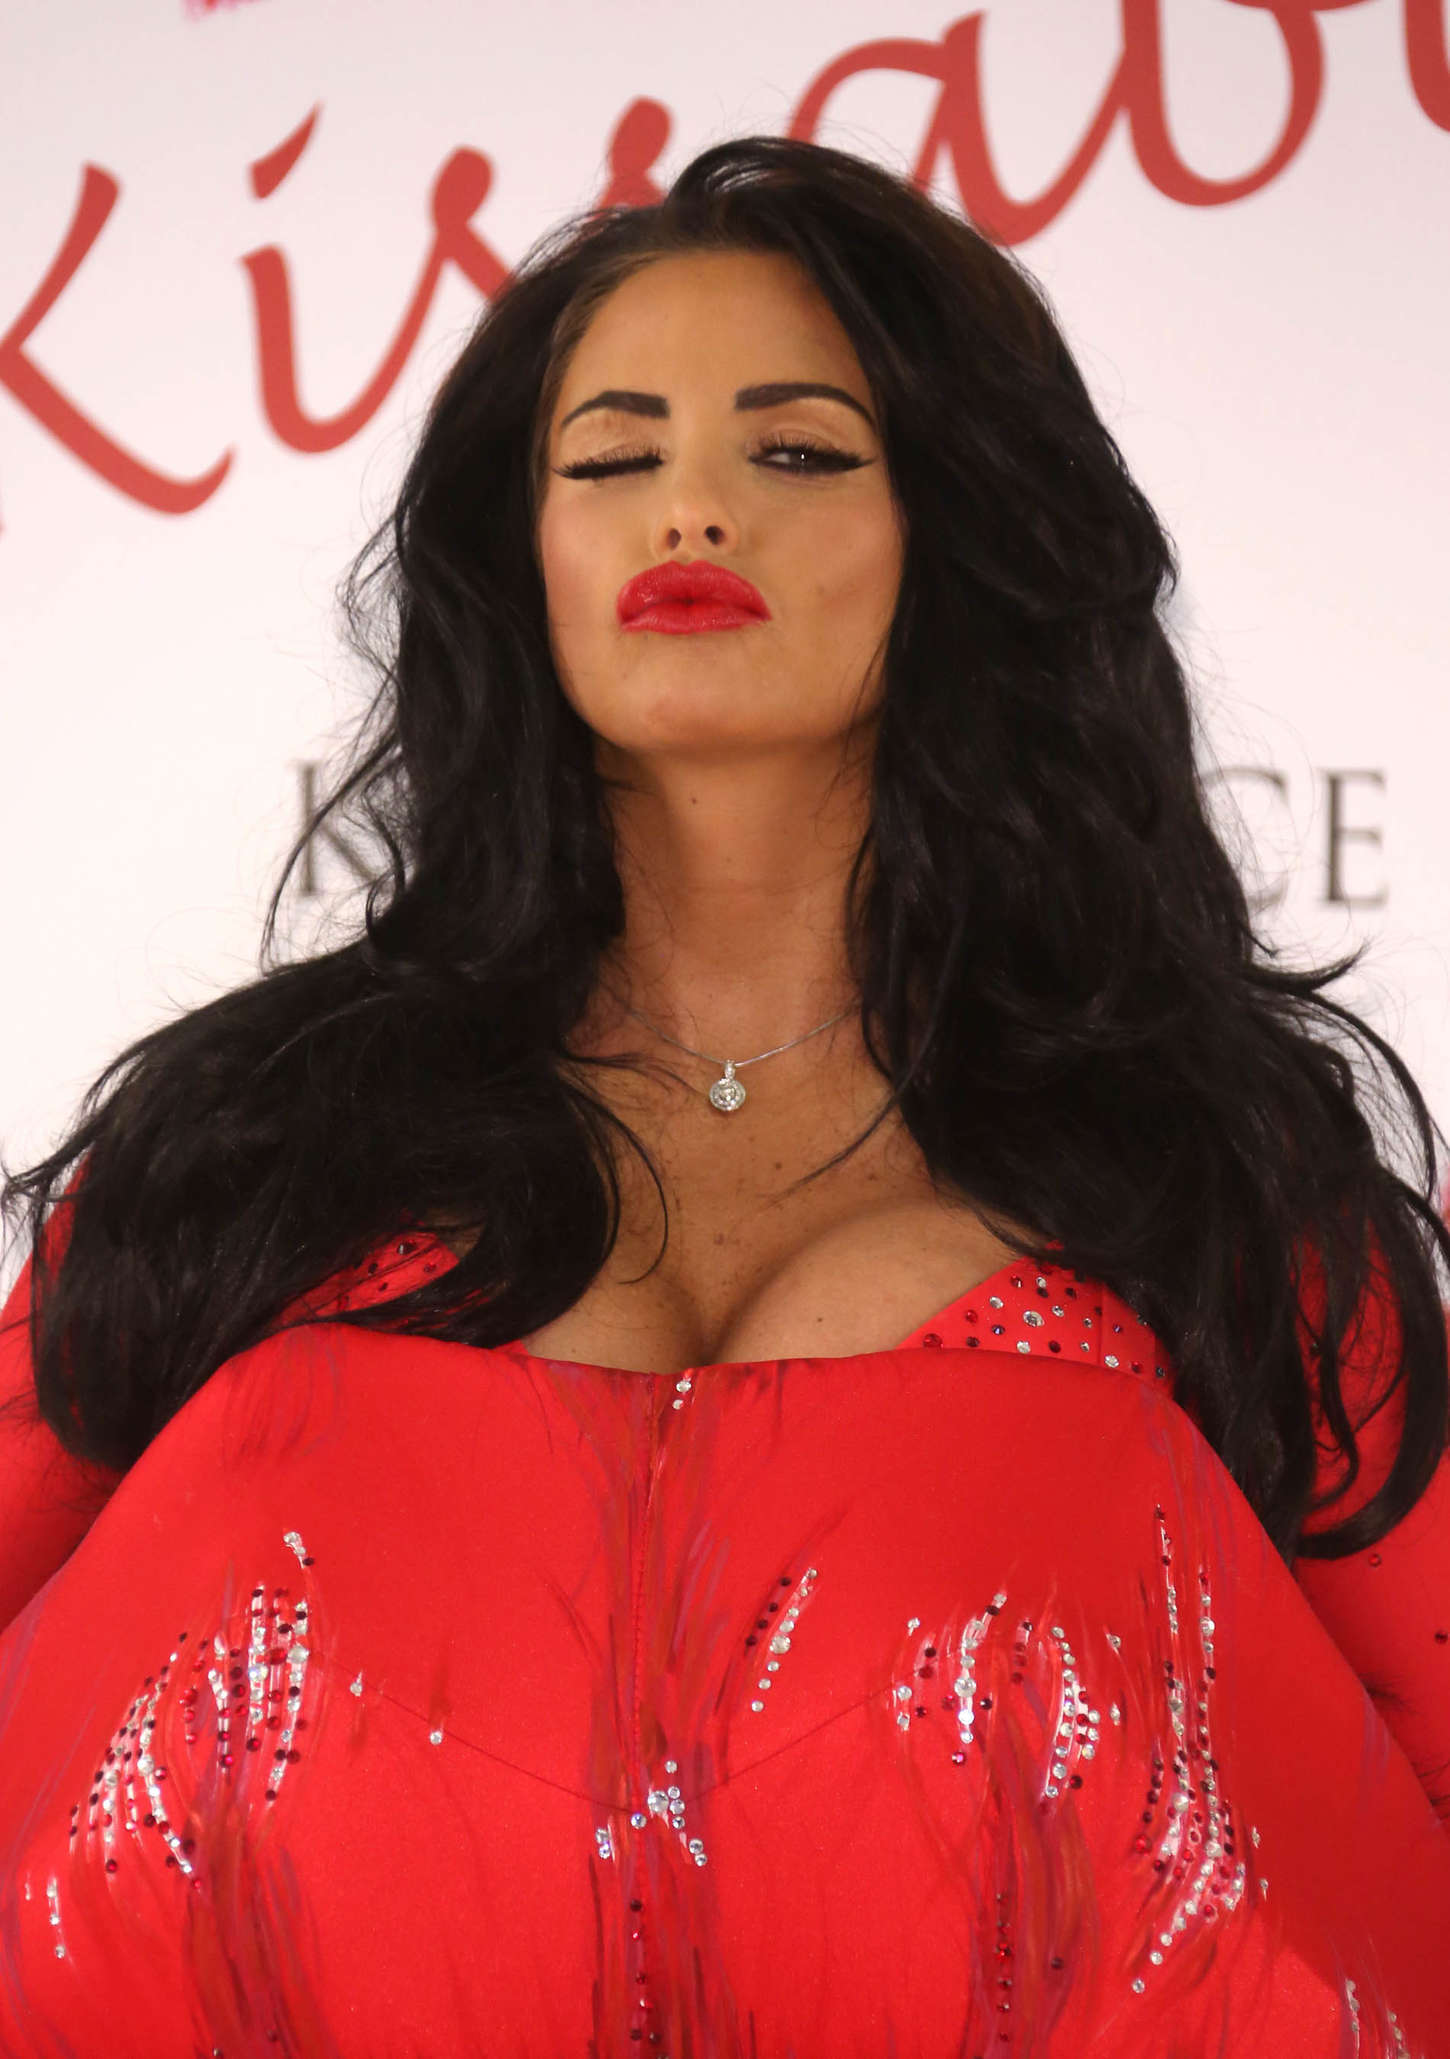 Katie Price launching her new fragrance Kissable